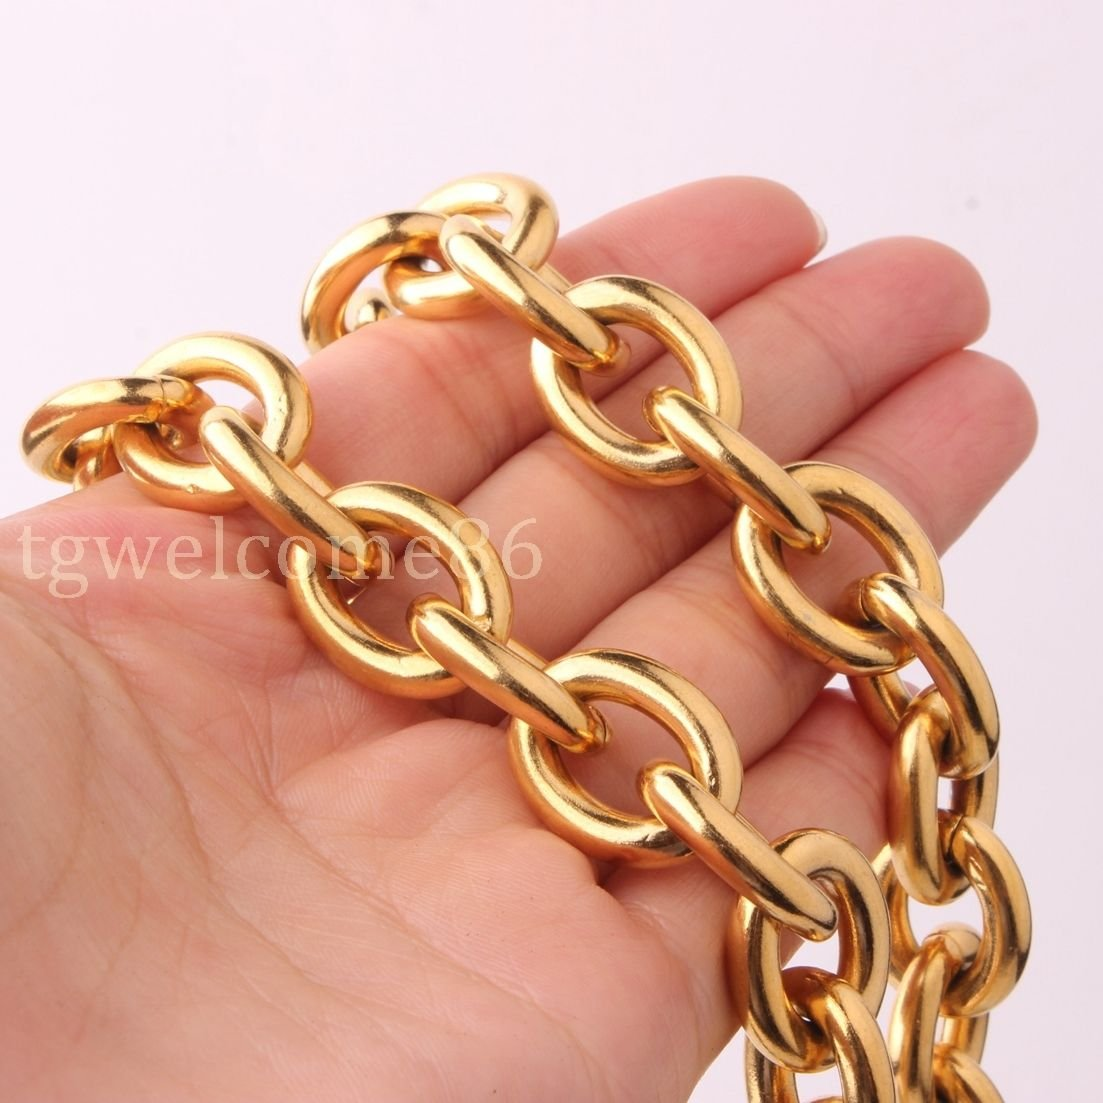 FidgetKute Charm Mens Stainless Steel Strong Rolo Oval Chain Necklace or Bracelet 8-40 Gold 11mm 22inch for Necklace